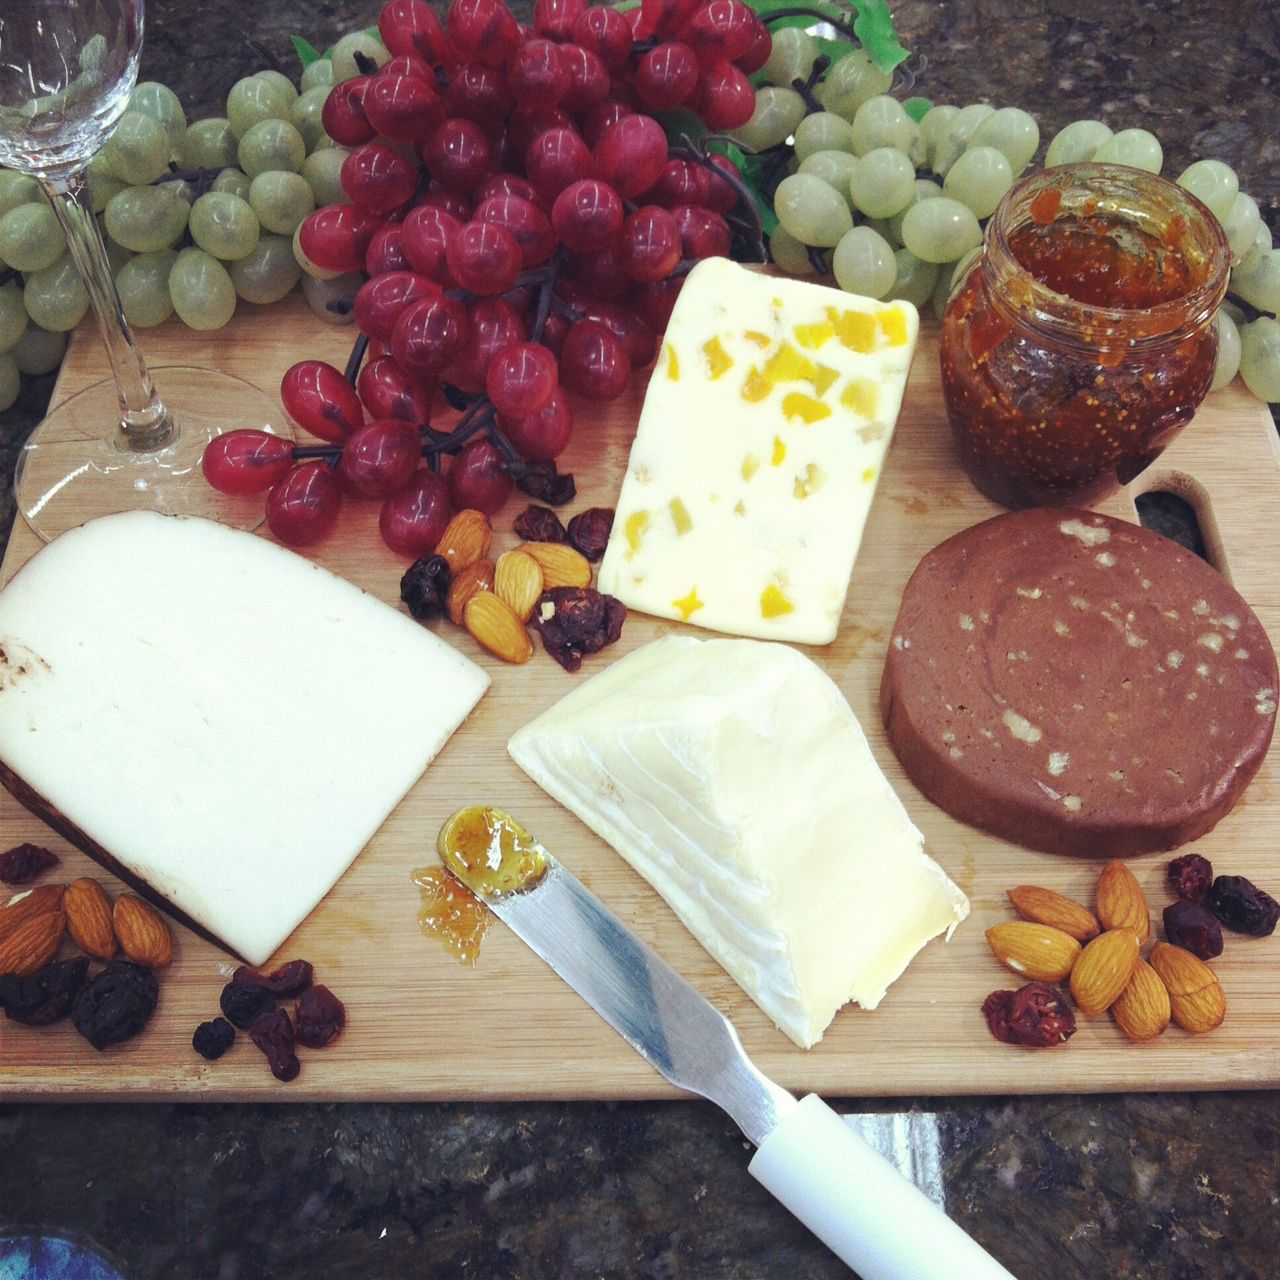 Cheese Dessert Plate - Carr Valley Cocoa Cardona White Stilton w/ Mango u0026 Ginger Carr Valley Chocolate Cheese Fudge Saint Angel. & Cheese Dessert Plate - Carr Valley Cocoa Cardona White Stilton w ...